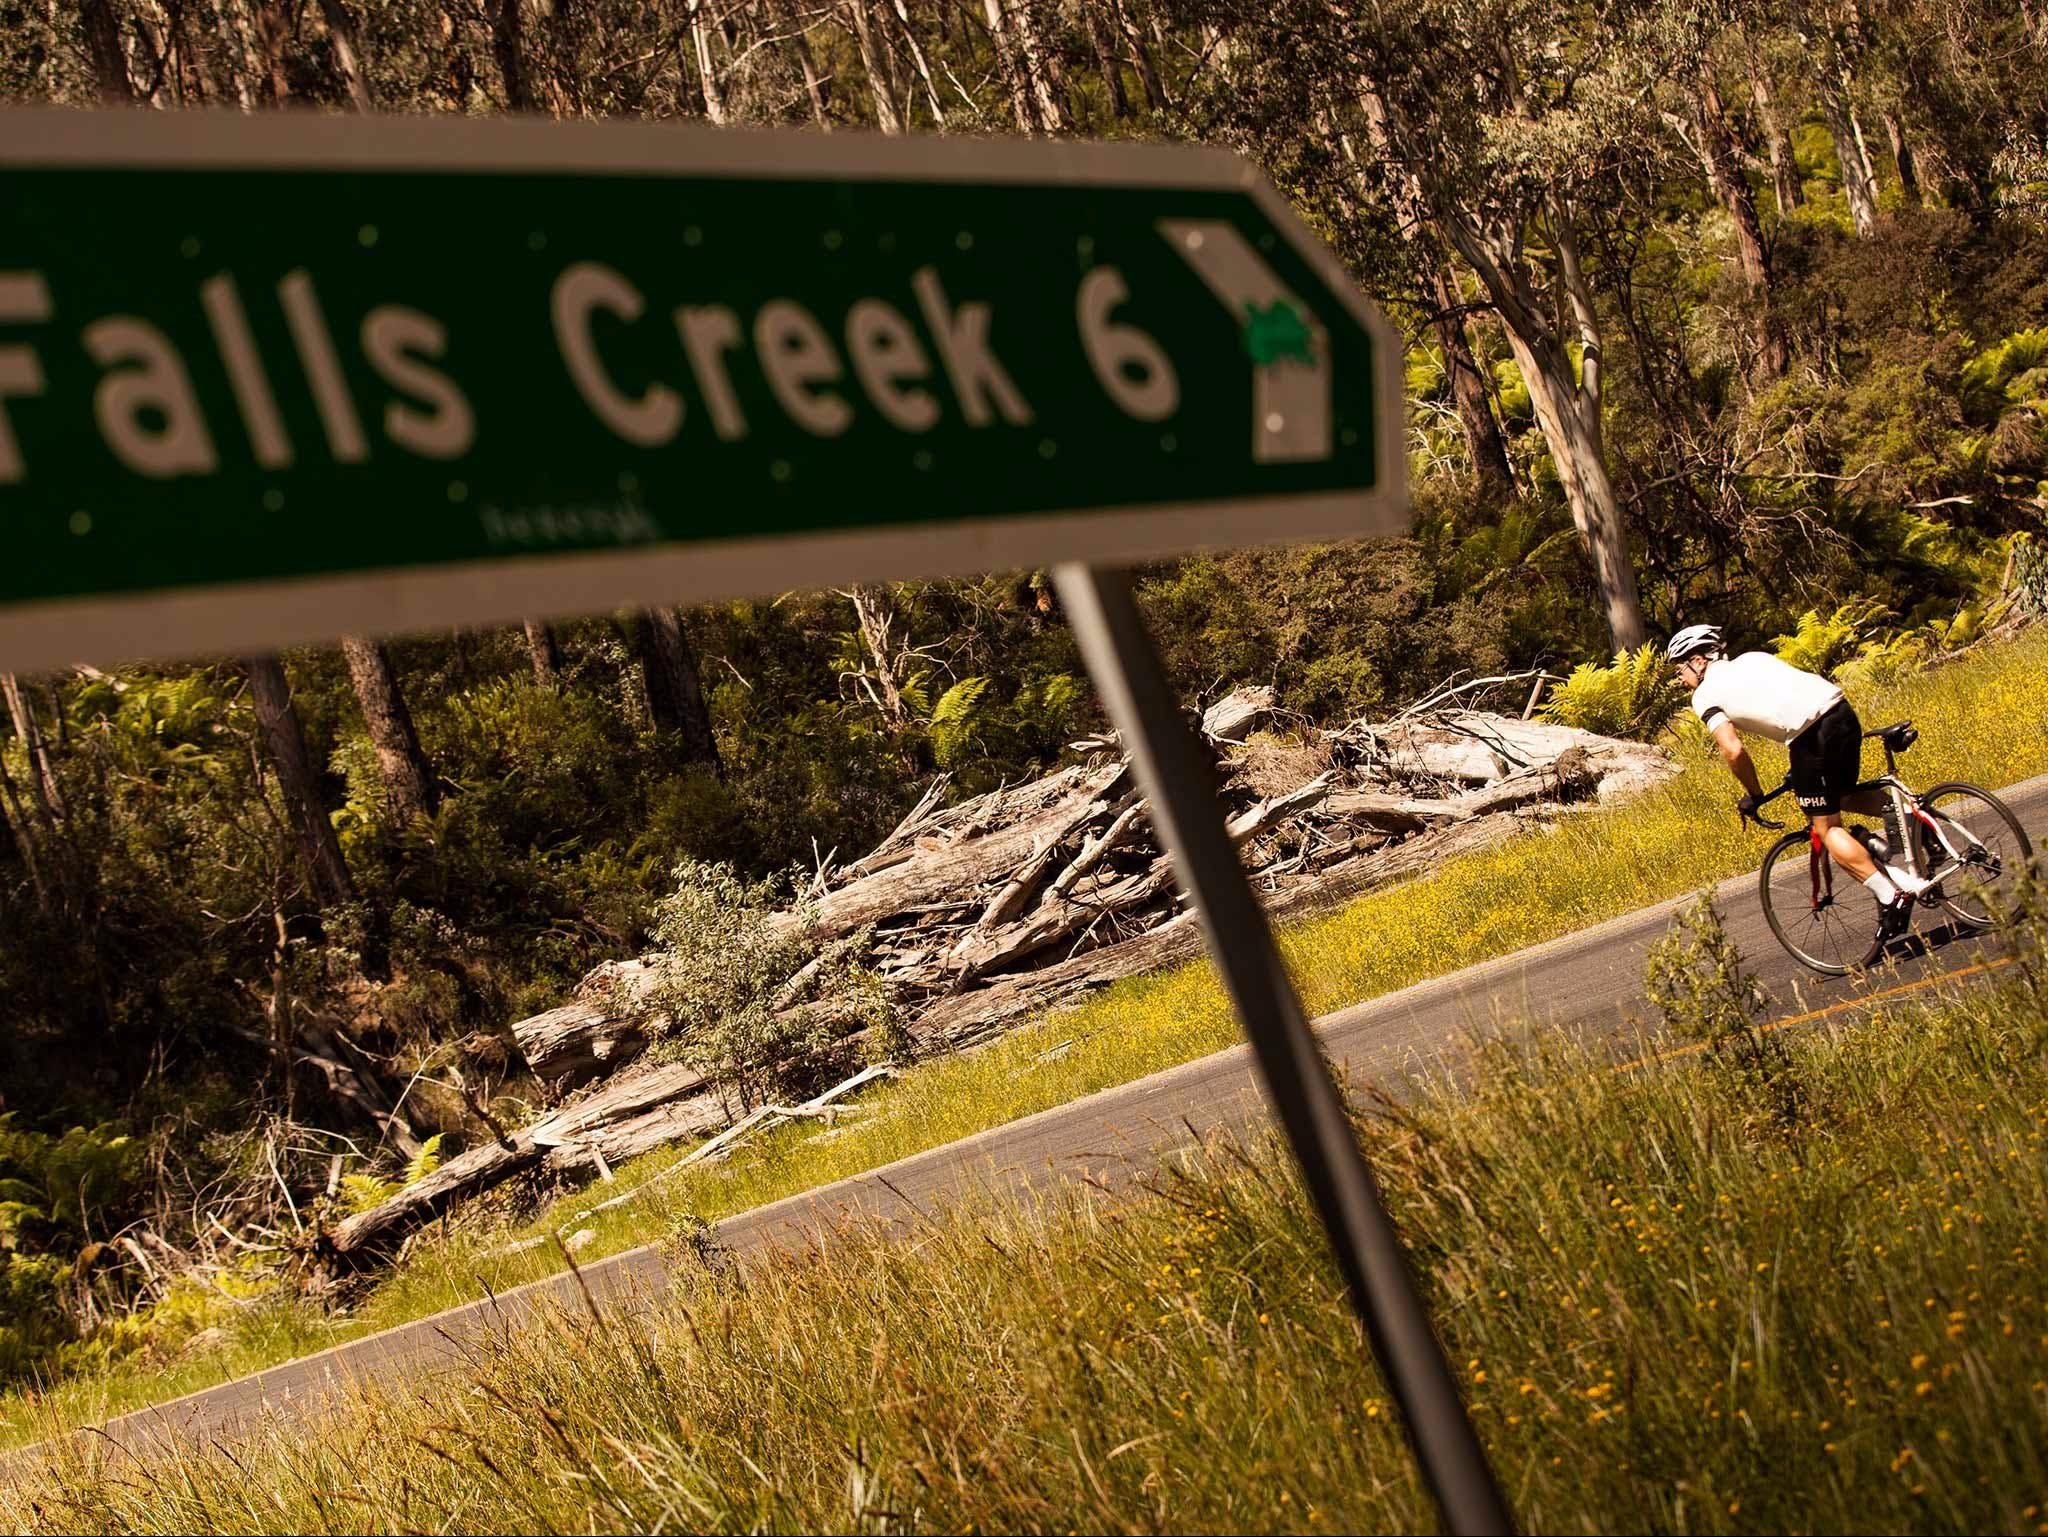 7 Peaks Ride - Falls Creek - Accommodation BNB